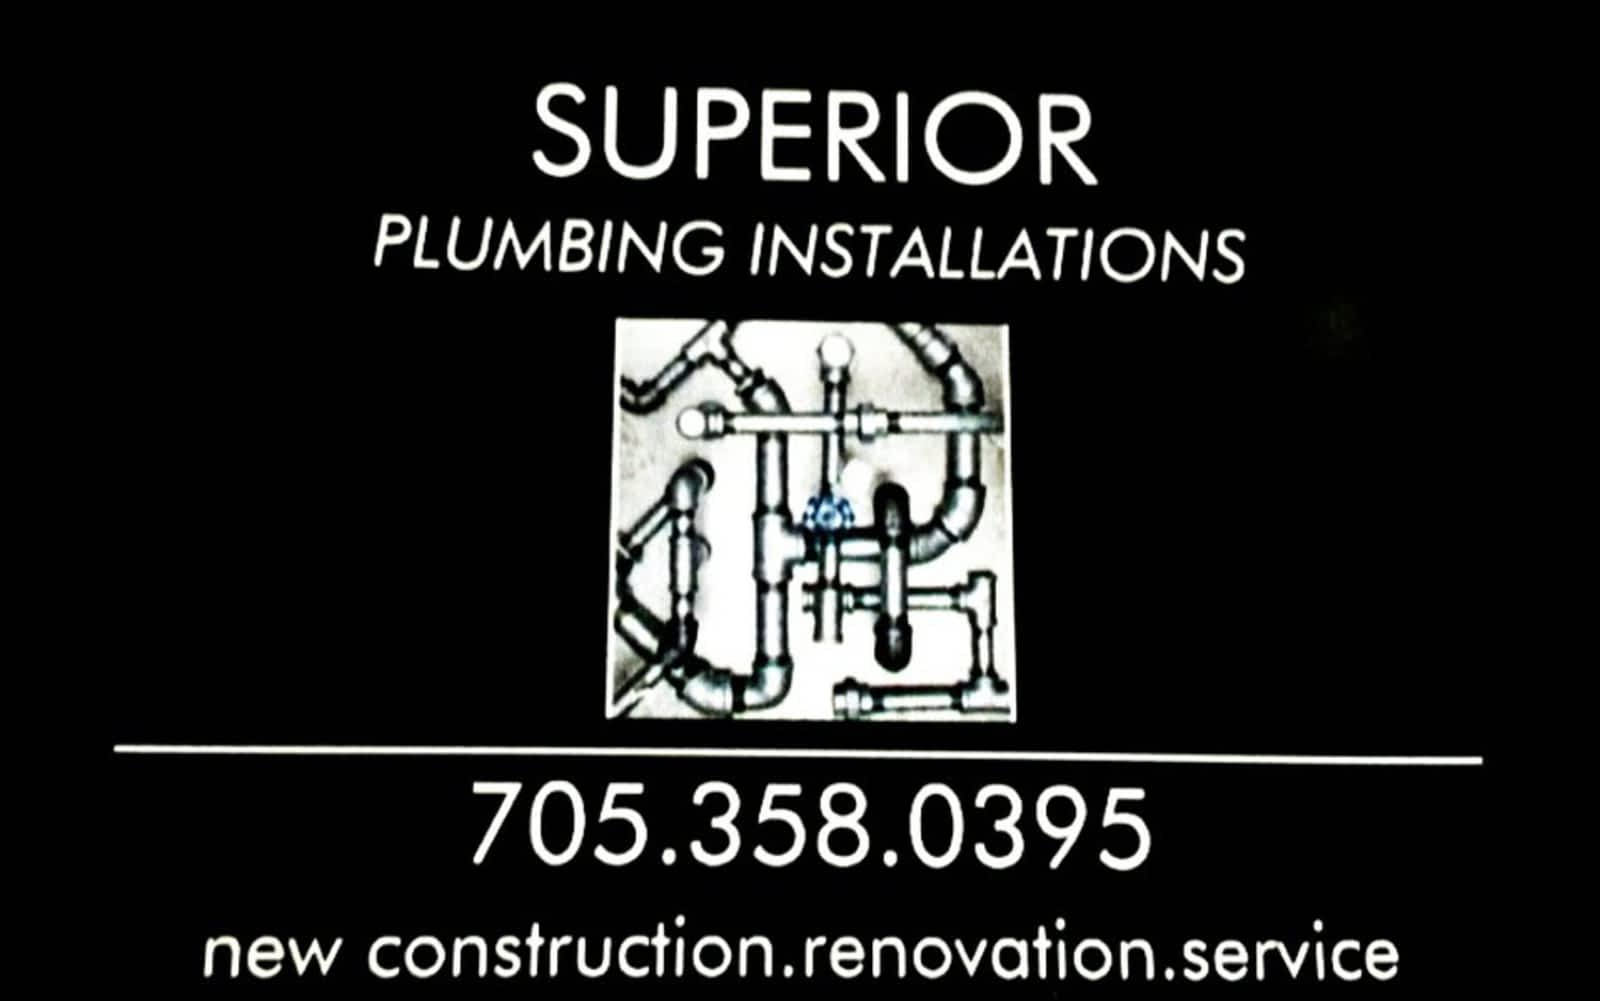 last town the cape we company provide services now hard teams to working about dedicated has have years img superior over four plumbing grown throughout brammer and